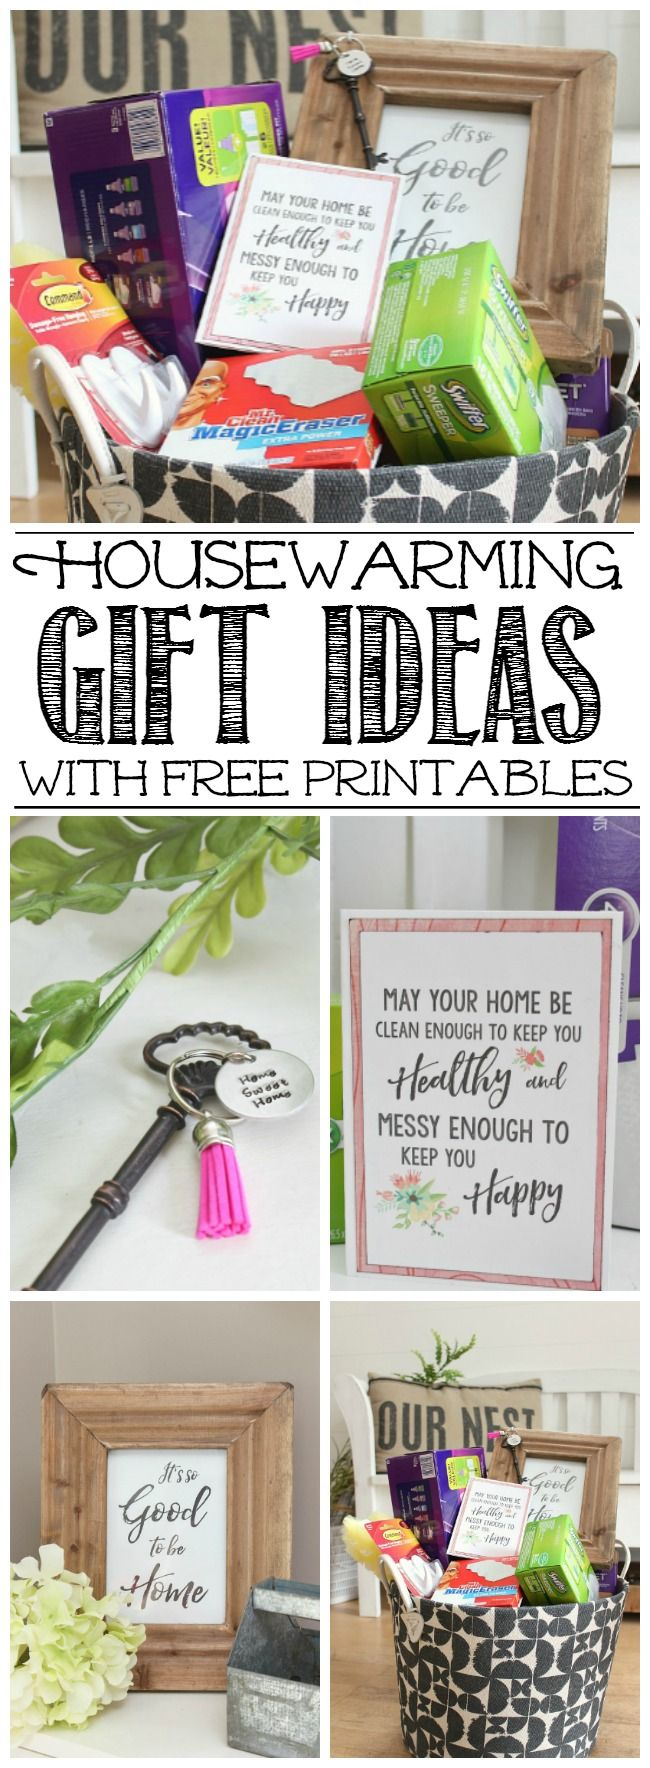 Package up all of your favorite cleaning supplies and a few fun goodies for a practical housewarming gift that will actually be used! Cute printables to go along with it!